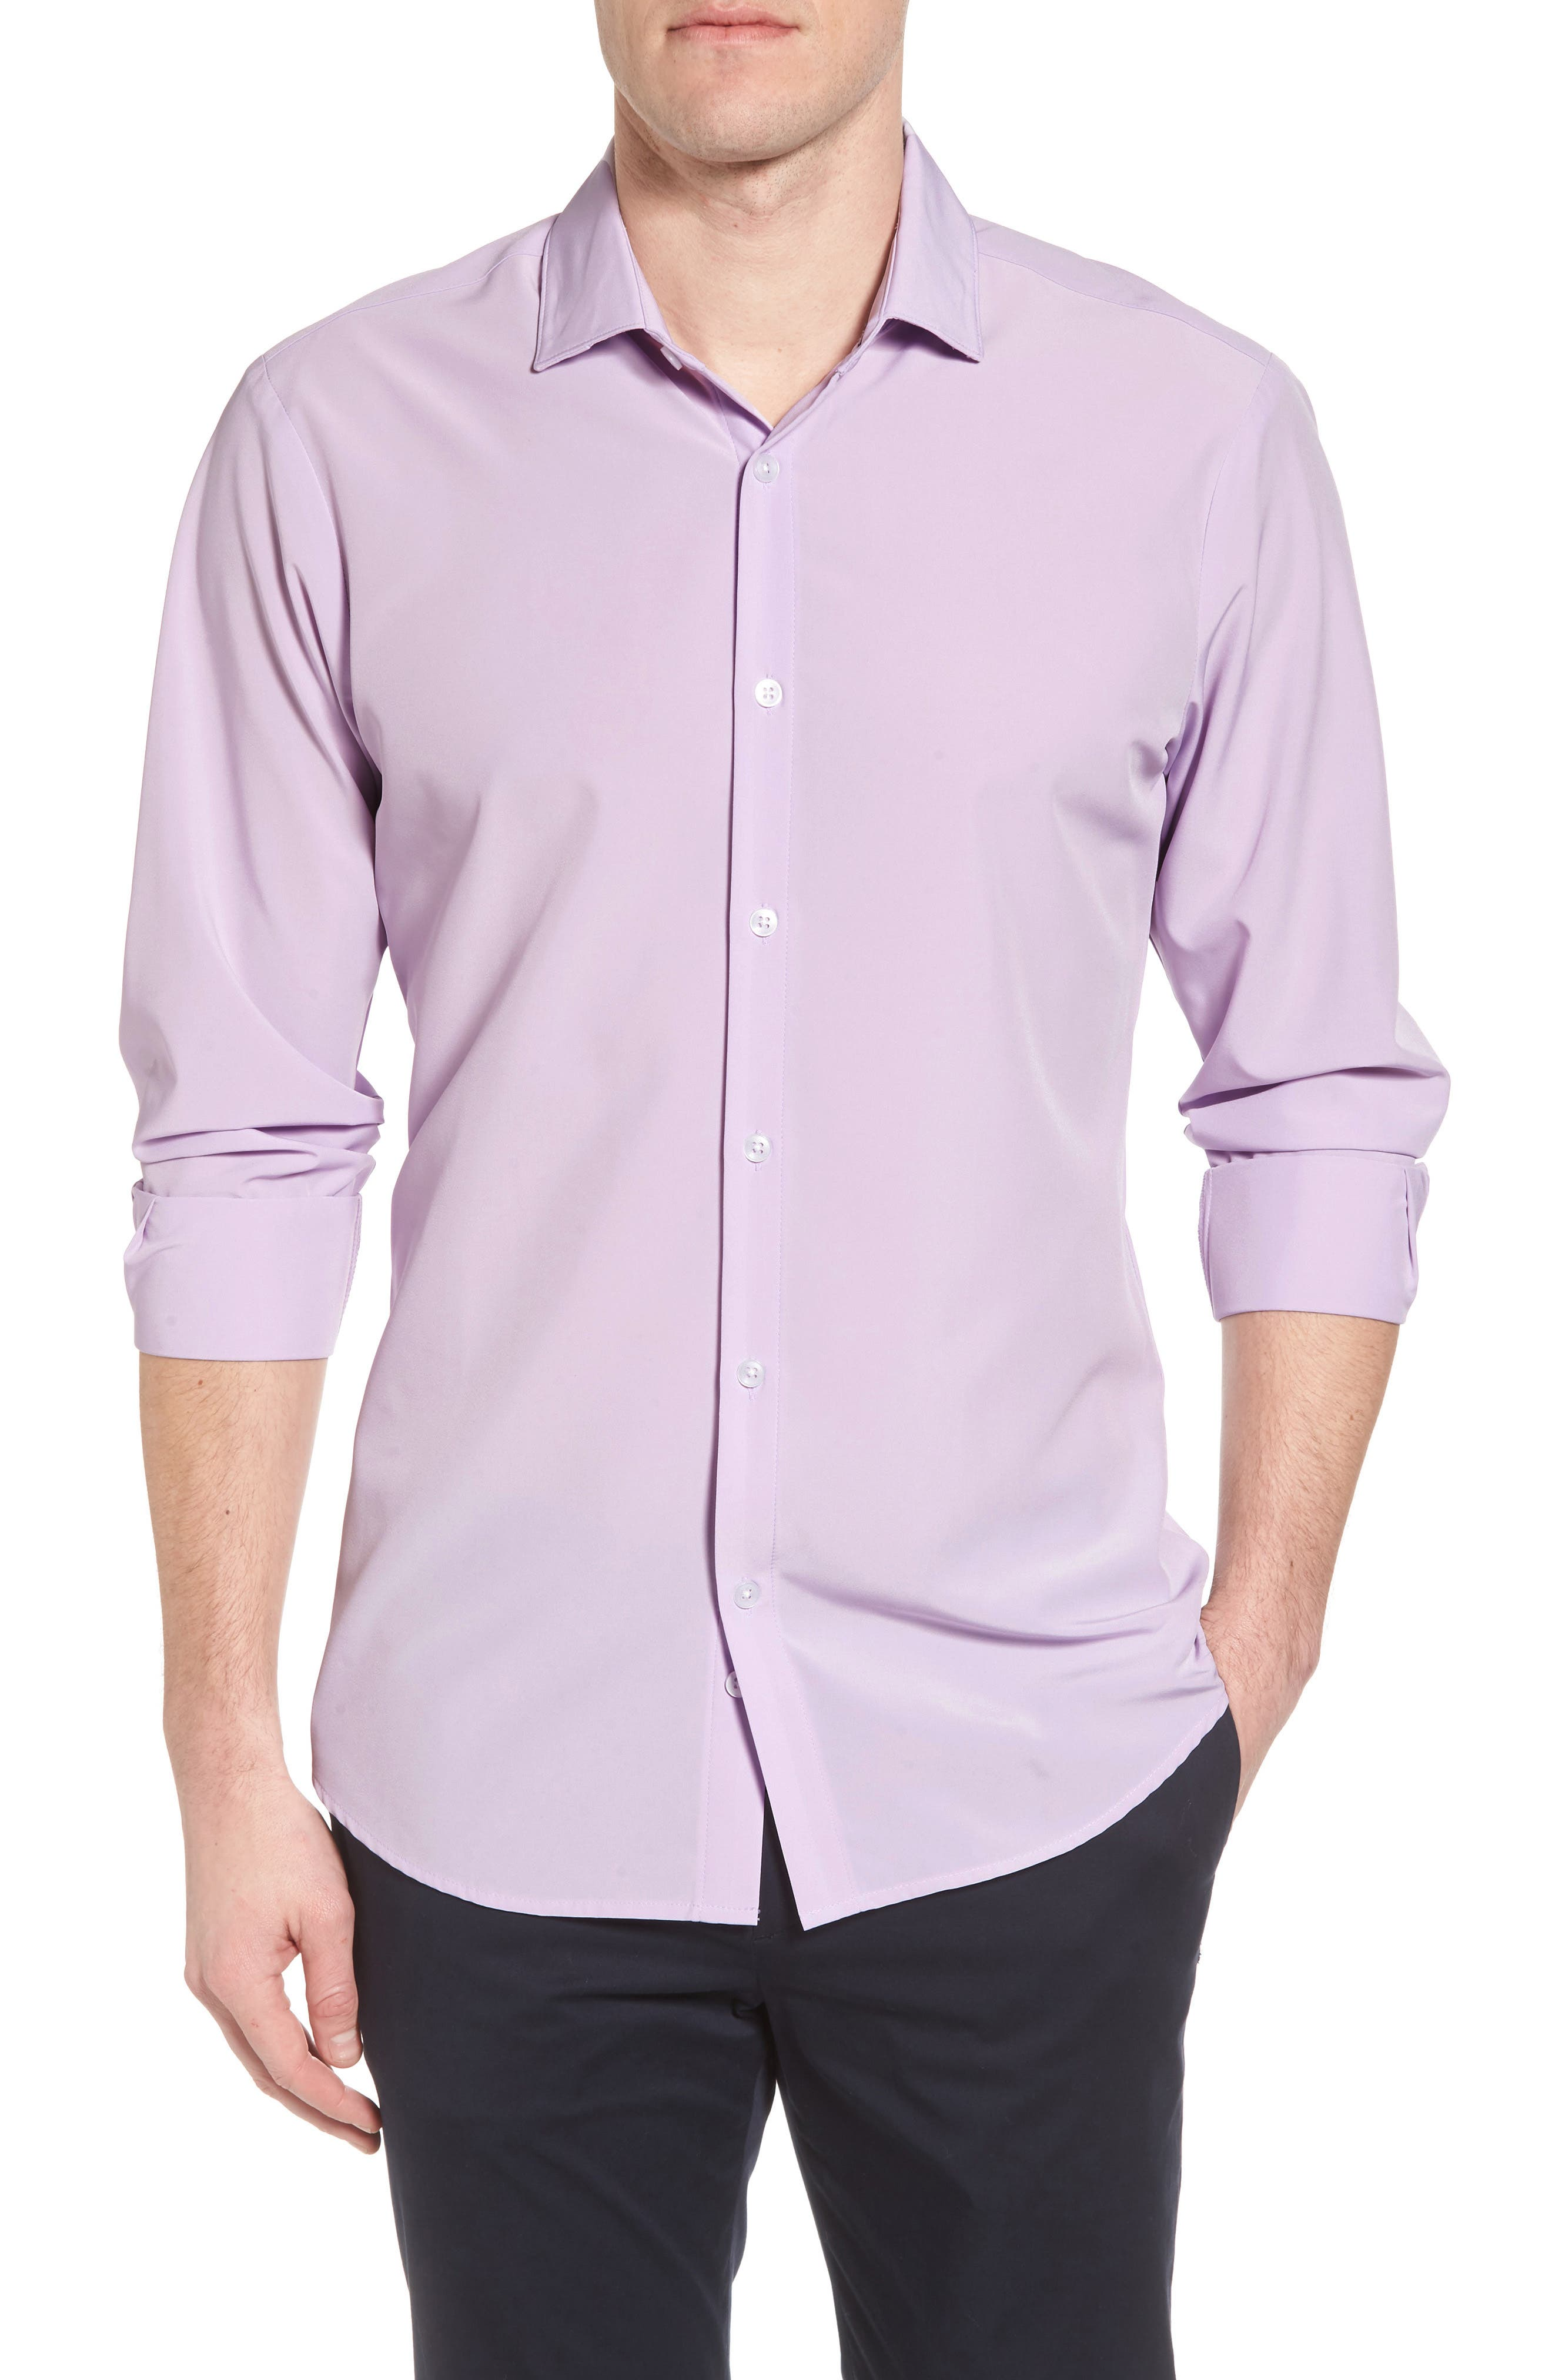 Henderson Performance Sport Shirt,                             Main thumbnail 1, color,                             Purple